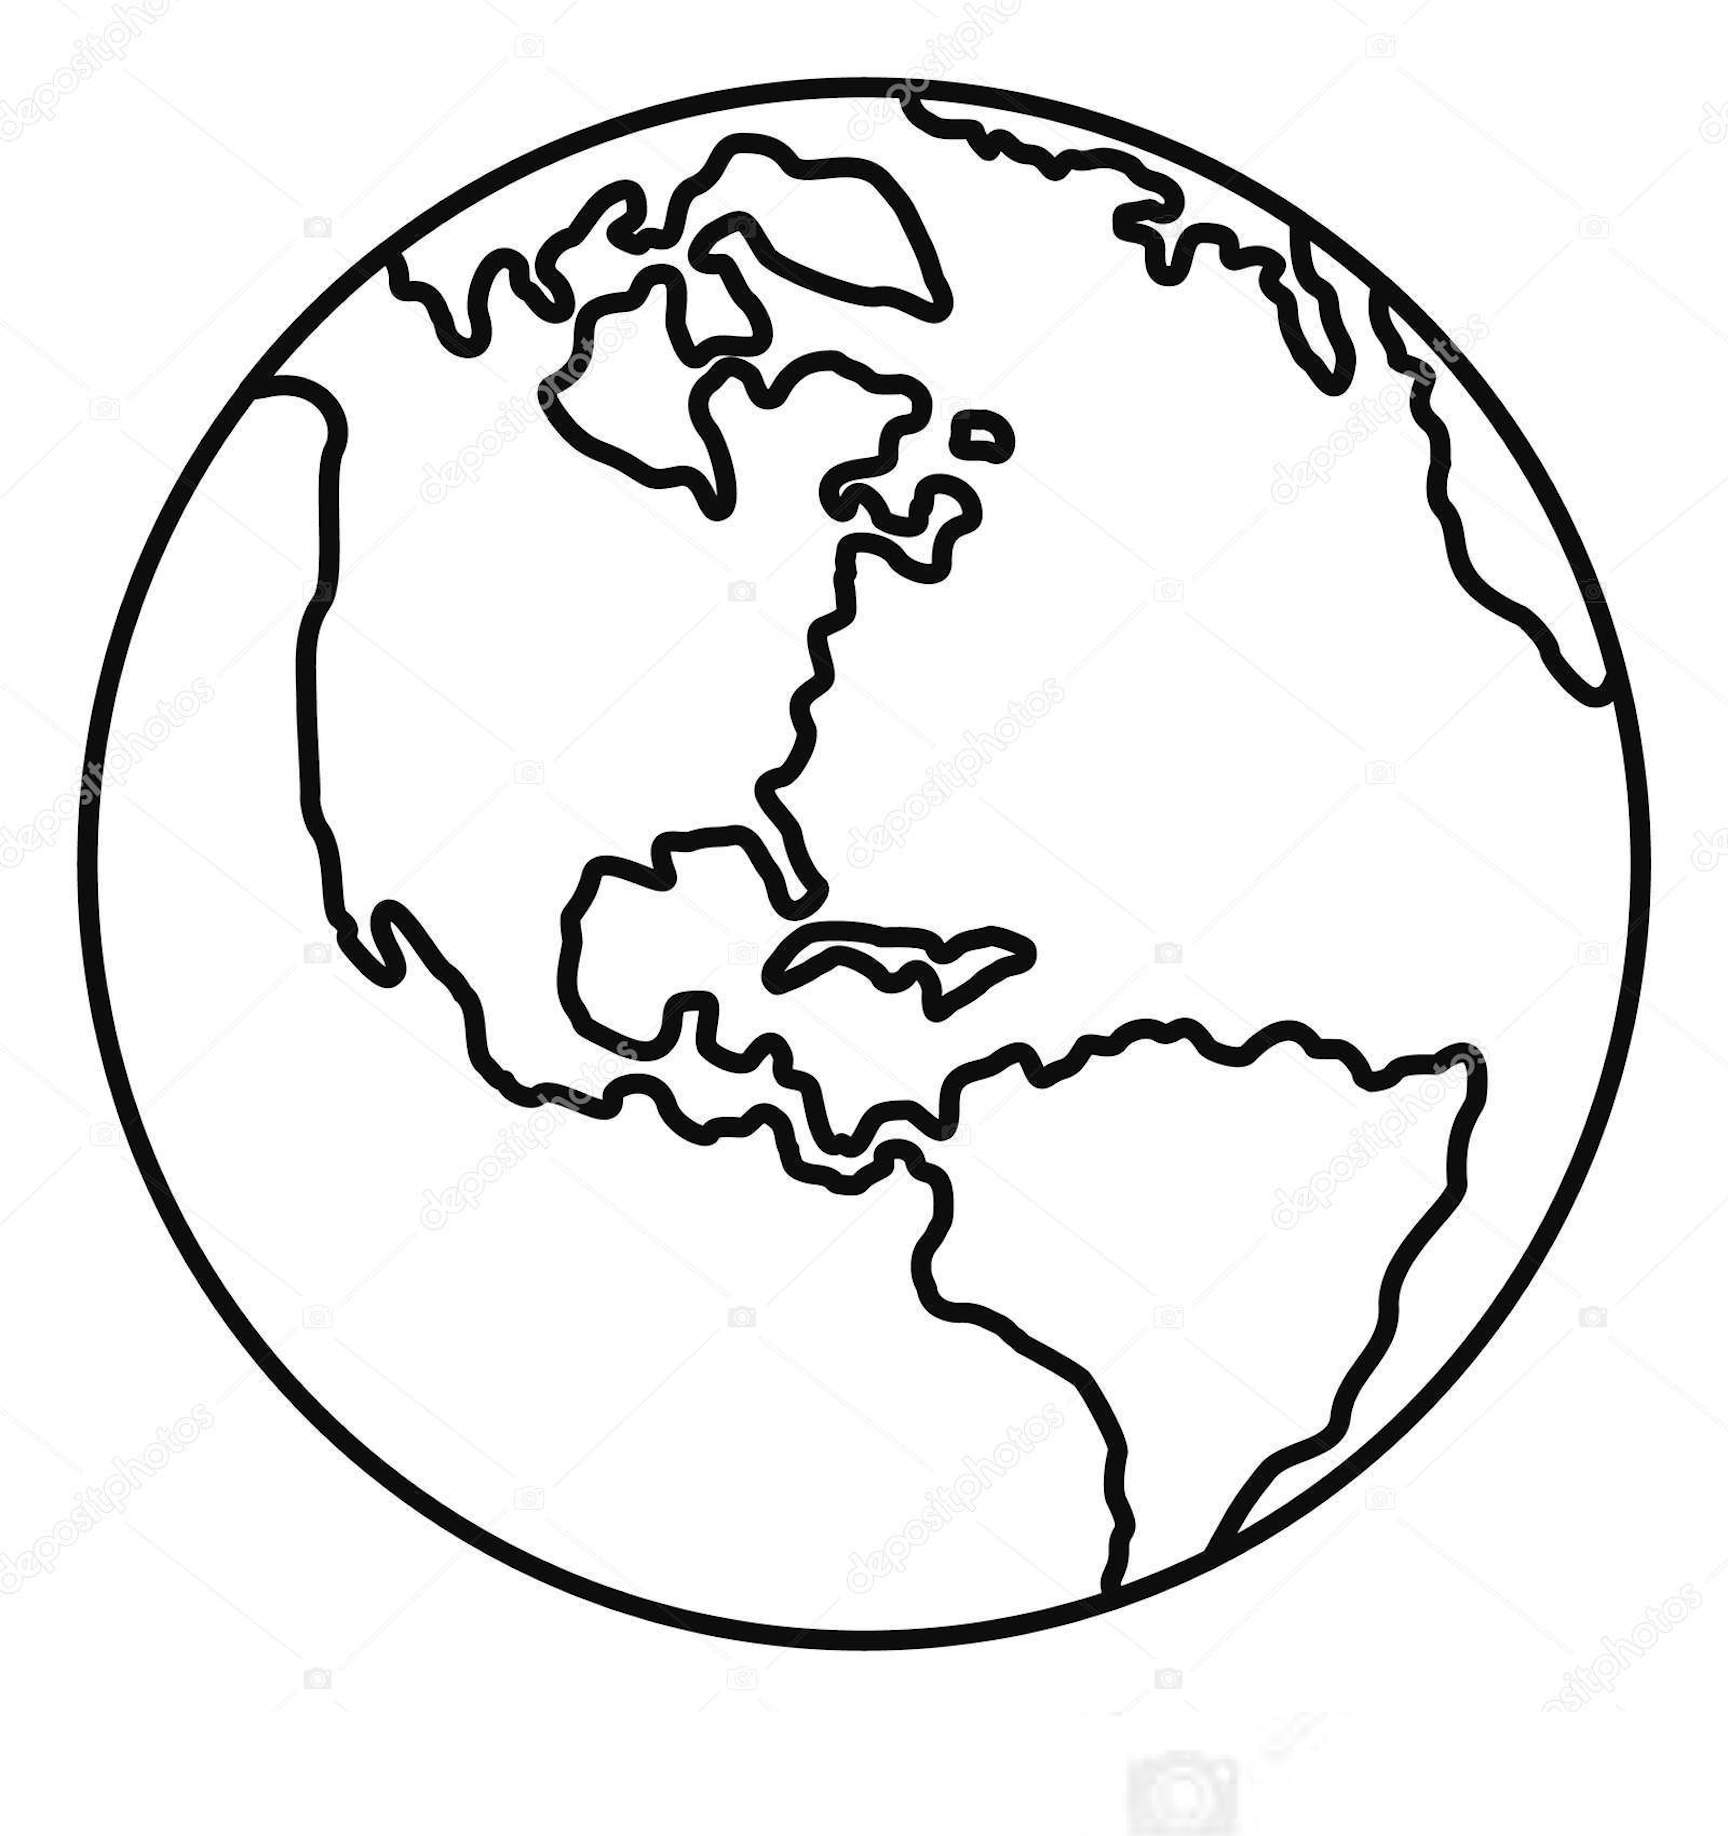 Earth Clipart Coloring Pages And Other Free Printable